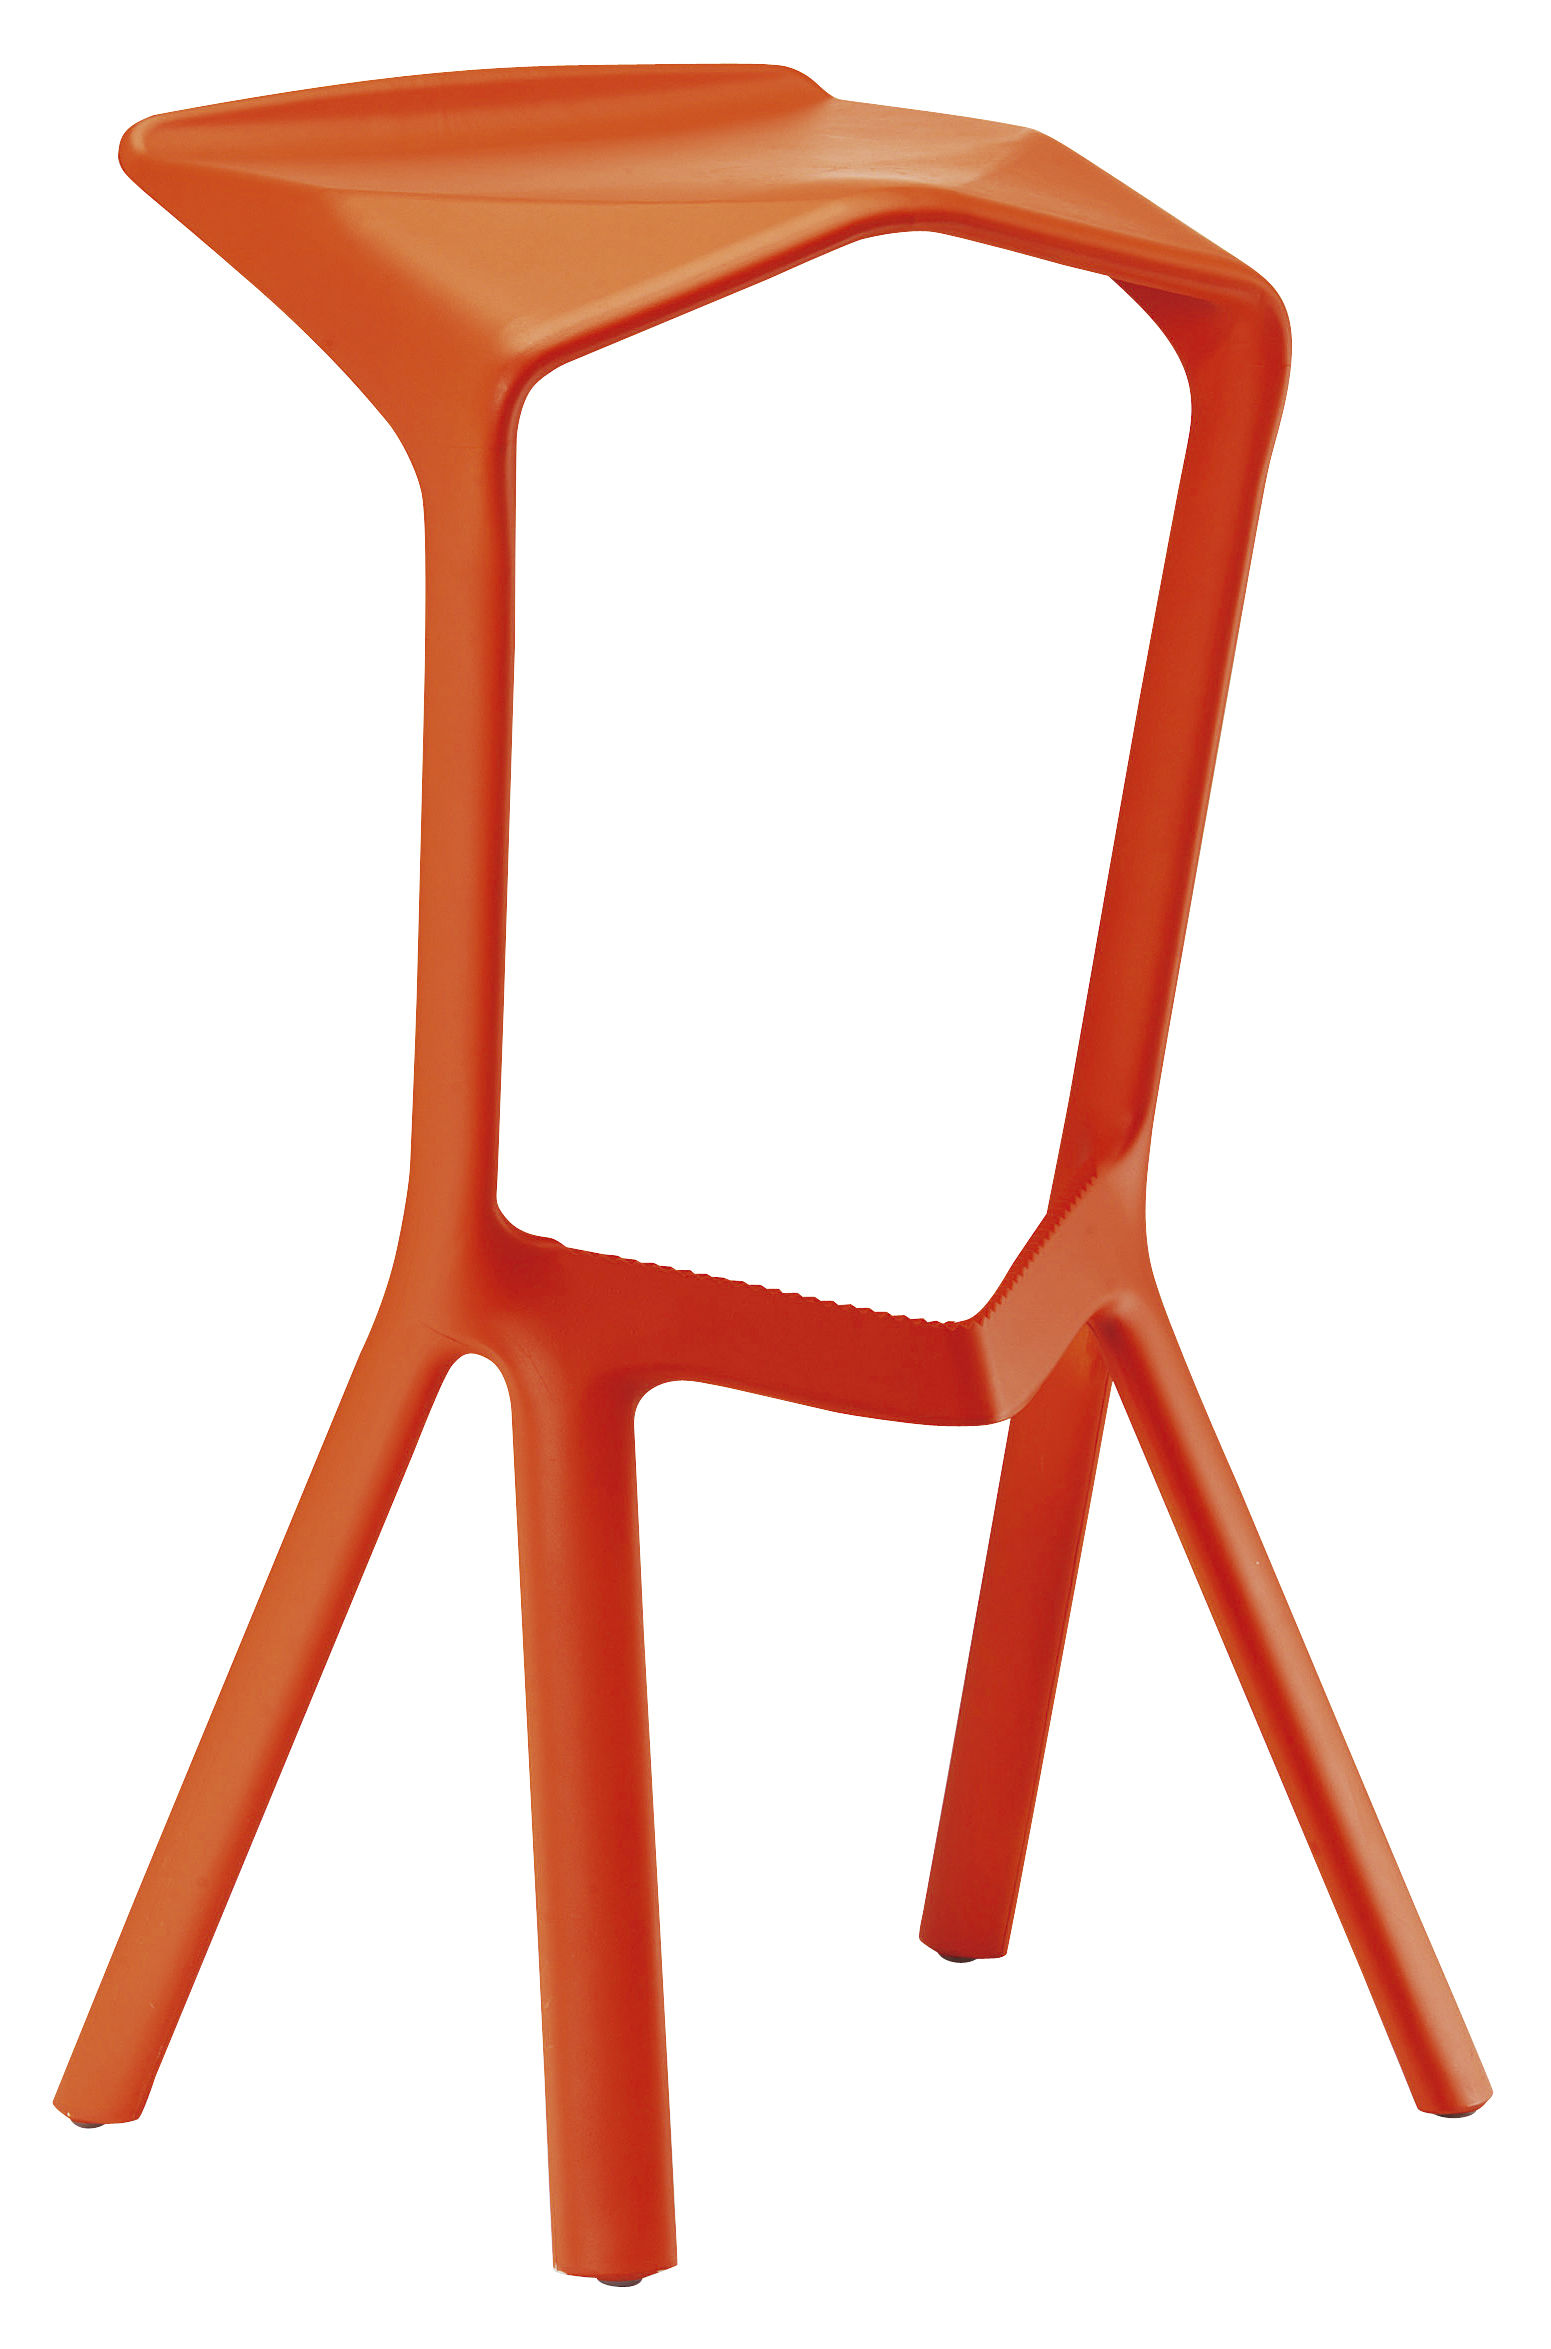 tabouret de bar miura h 78 cm plastique orange plank. Black Bedroom Furniture Sets. Home Design Ideas